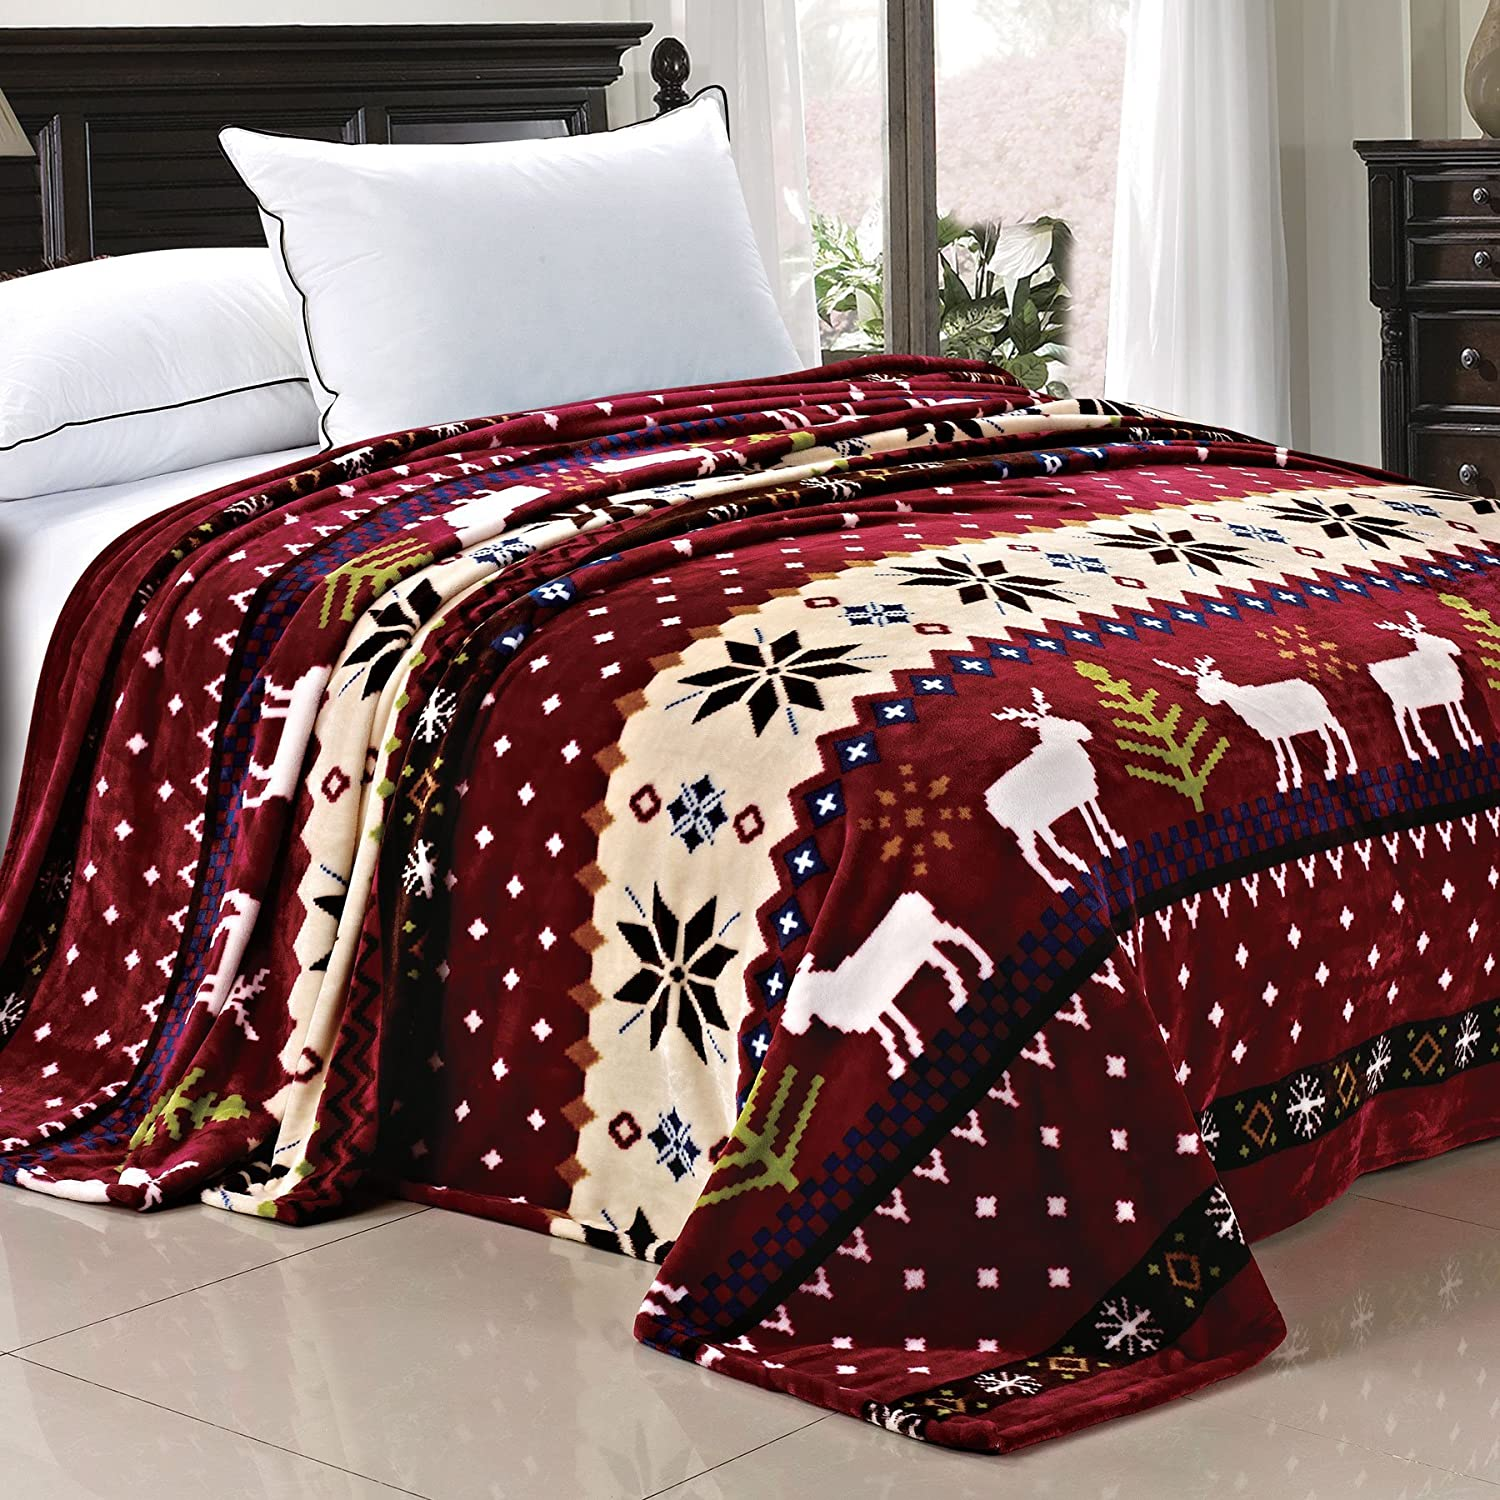 bedding feelin uk you sets to festive bed get christmas worklife